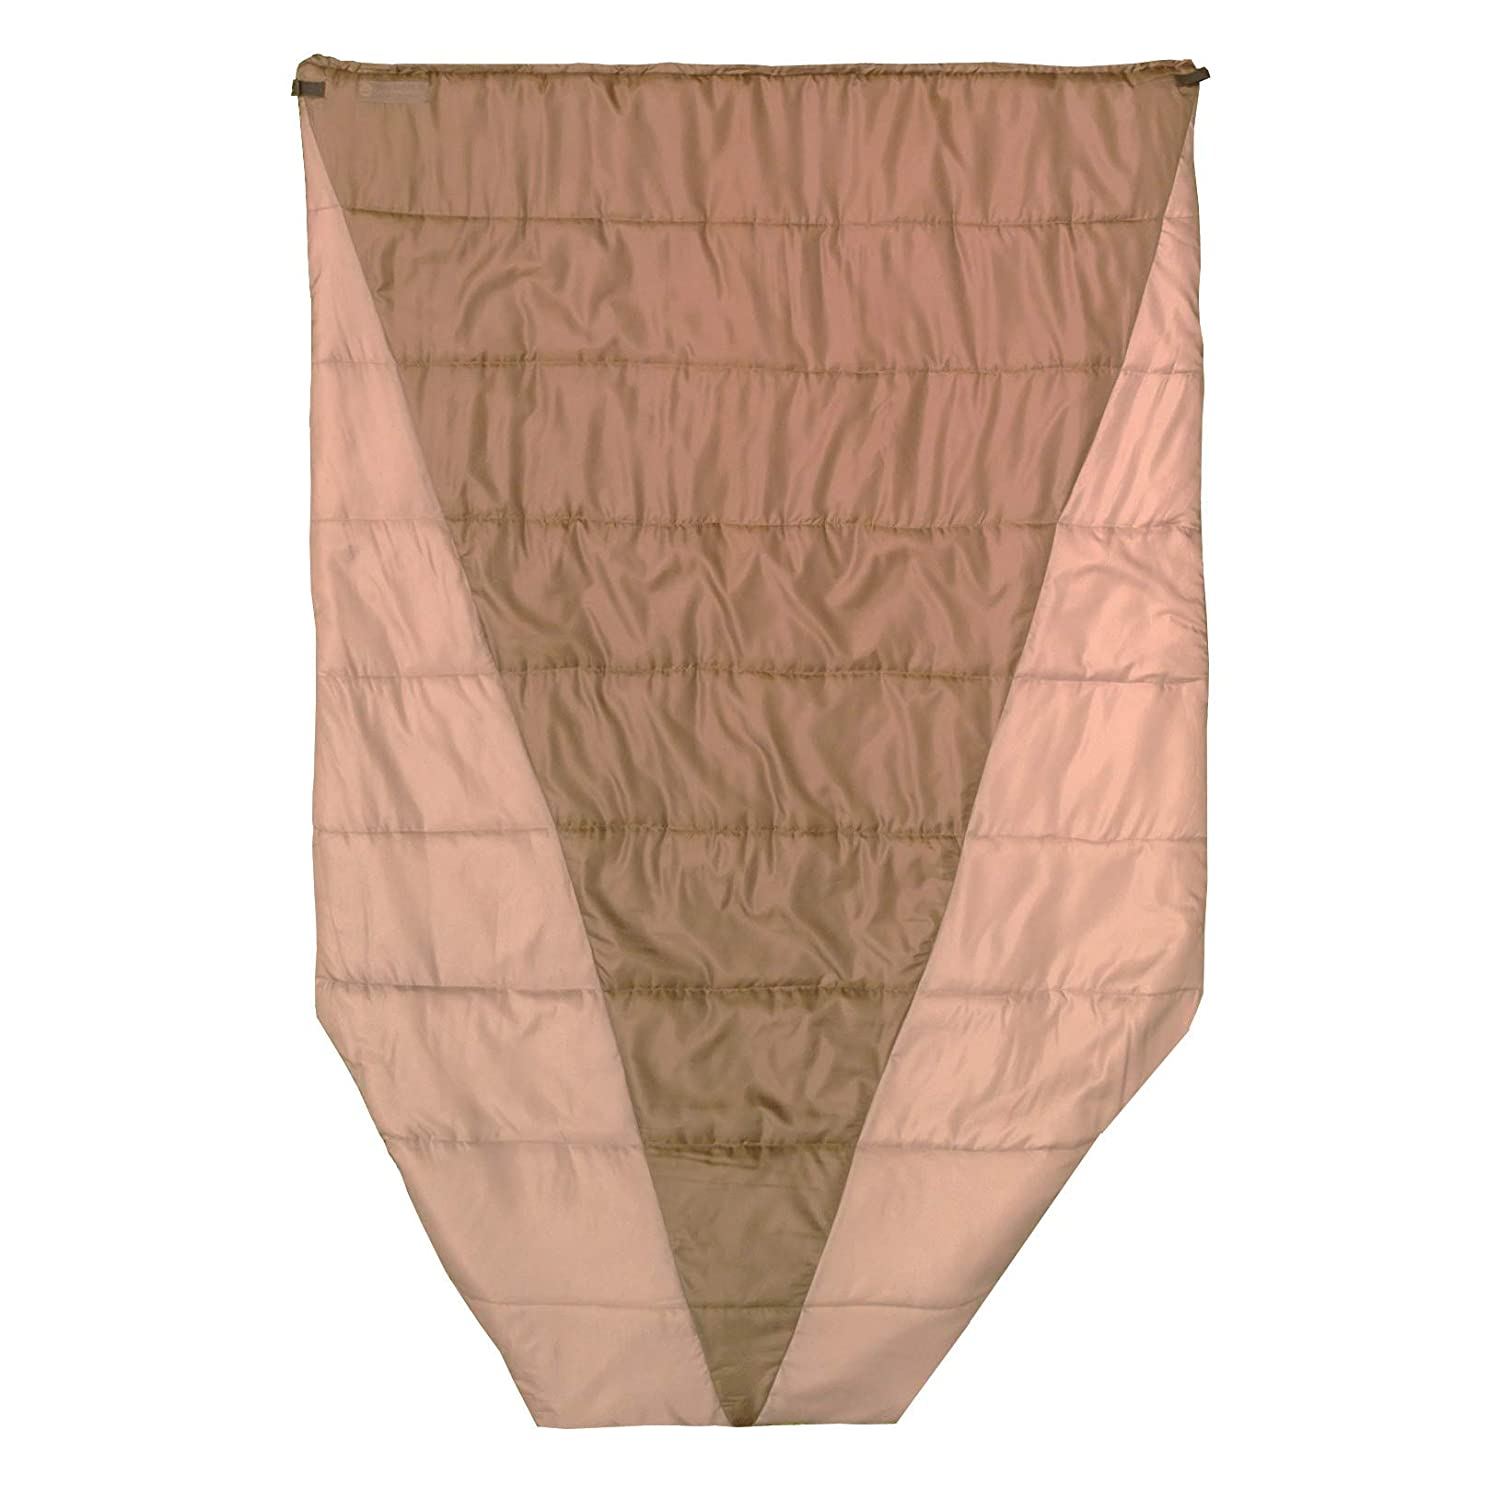 Go Outfitters Adventure Top Quilt, The Sleeping Un-Bag and Hammock Camping Top Quilt (Coyote Brown) [並行輸入品] B07R4WZY3K